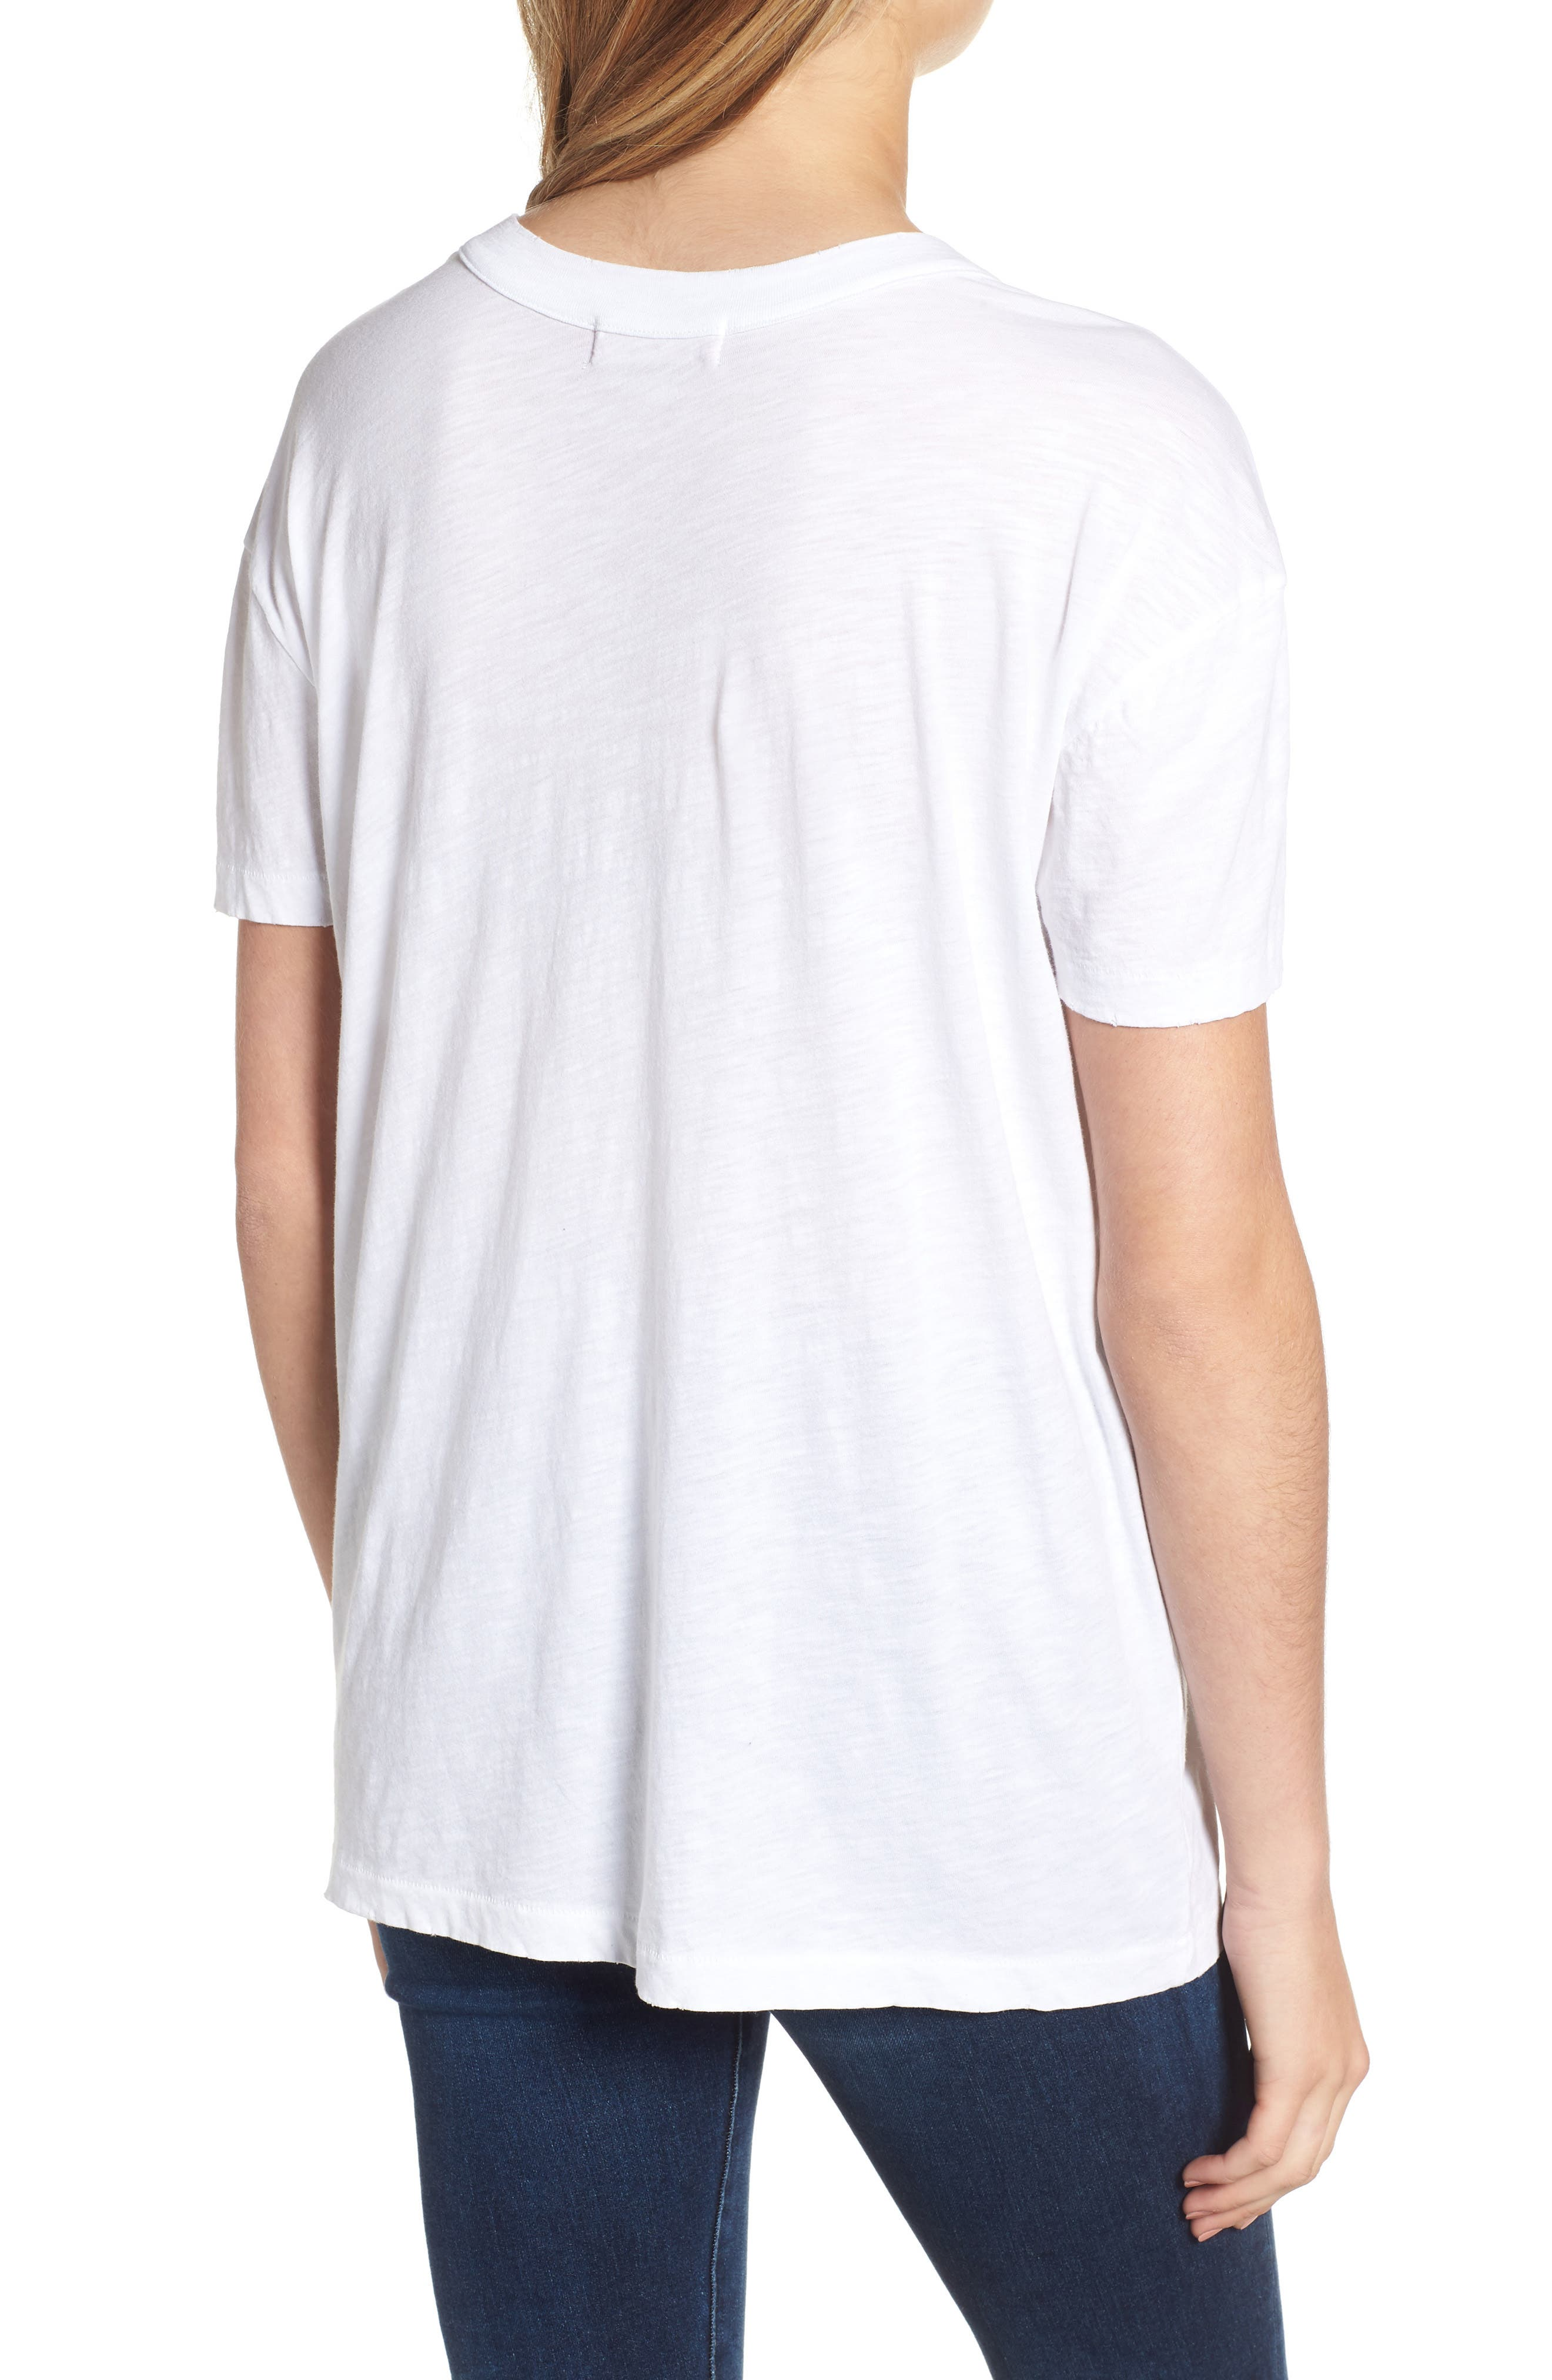 Allen Cutout Detail Boyfriend Cotton Tee,                             Alternate thumbnail 2, color,                             WHITE